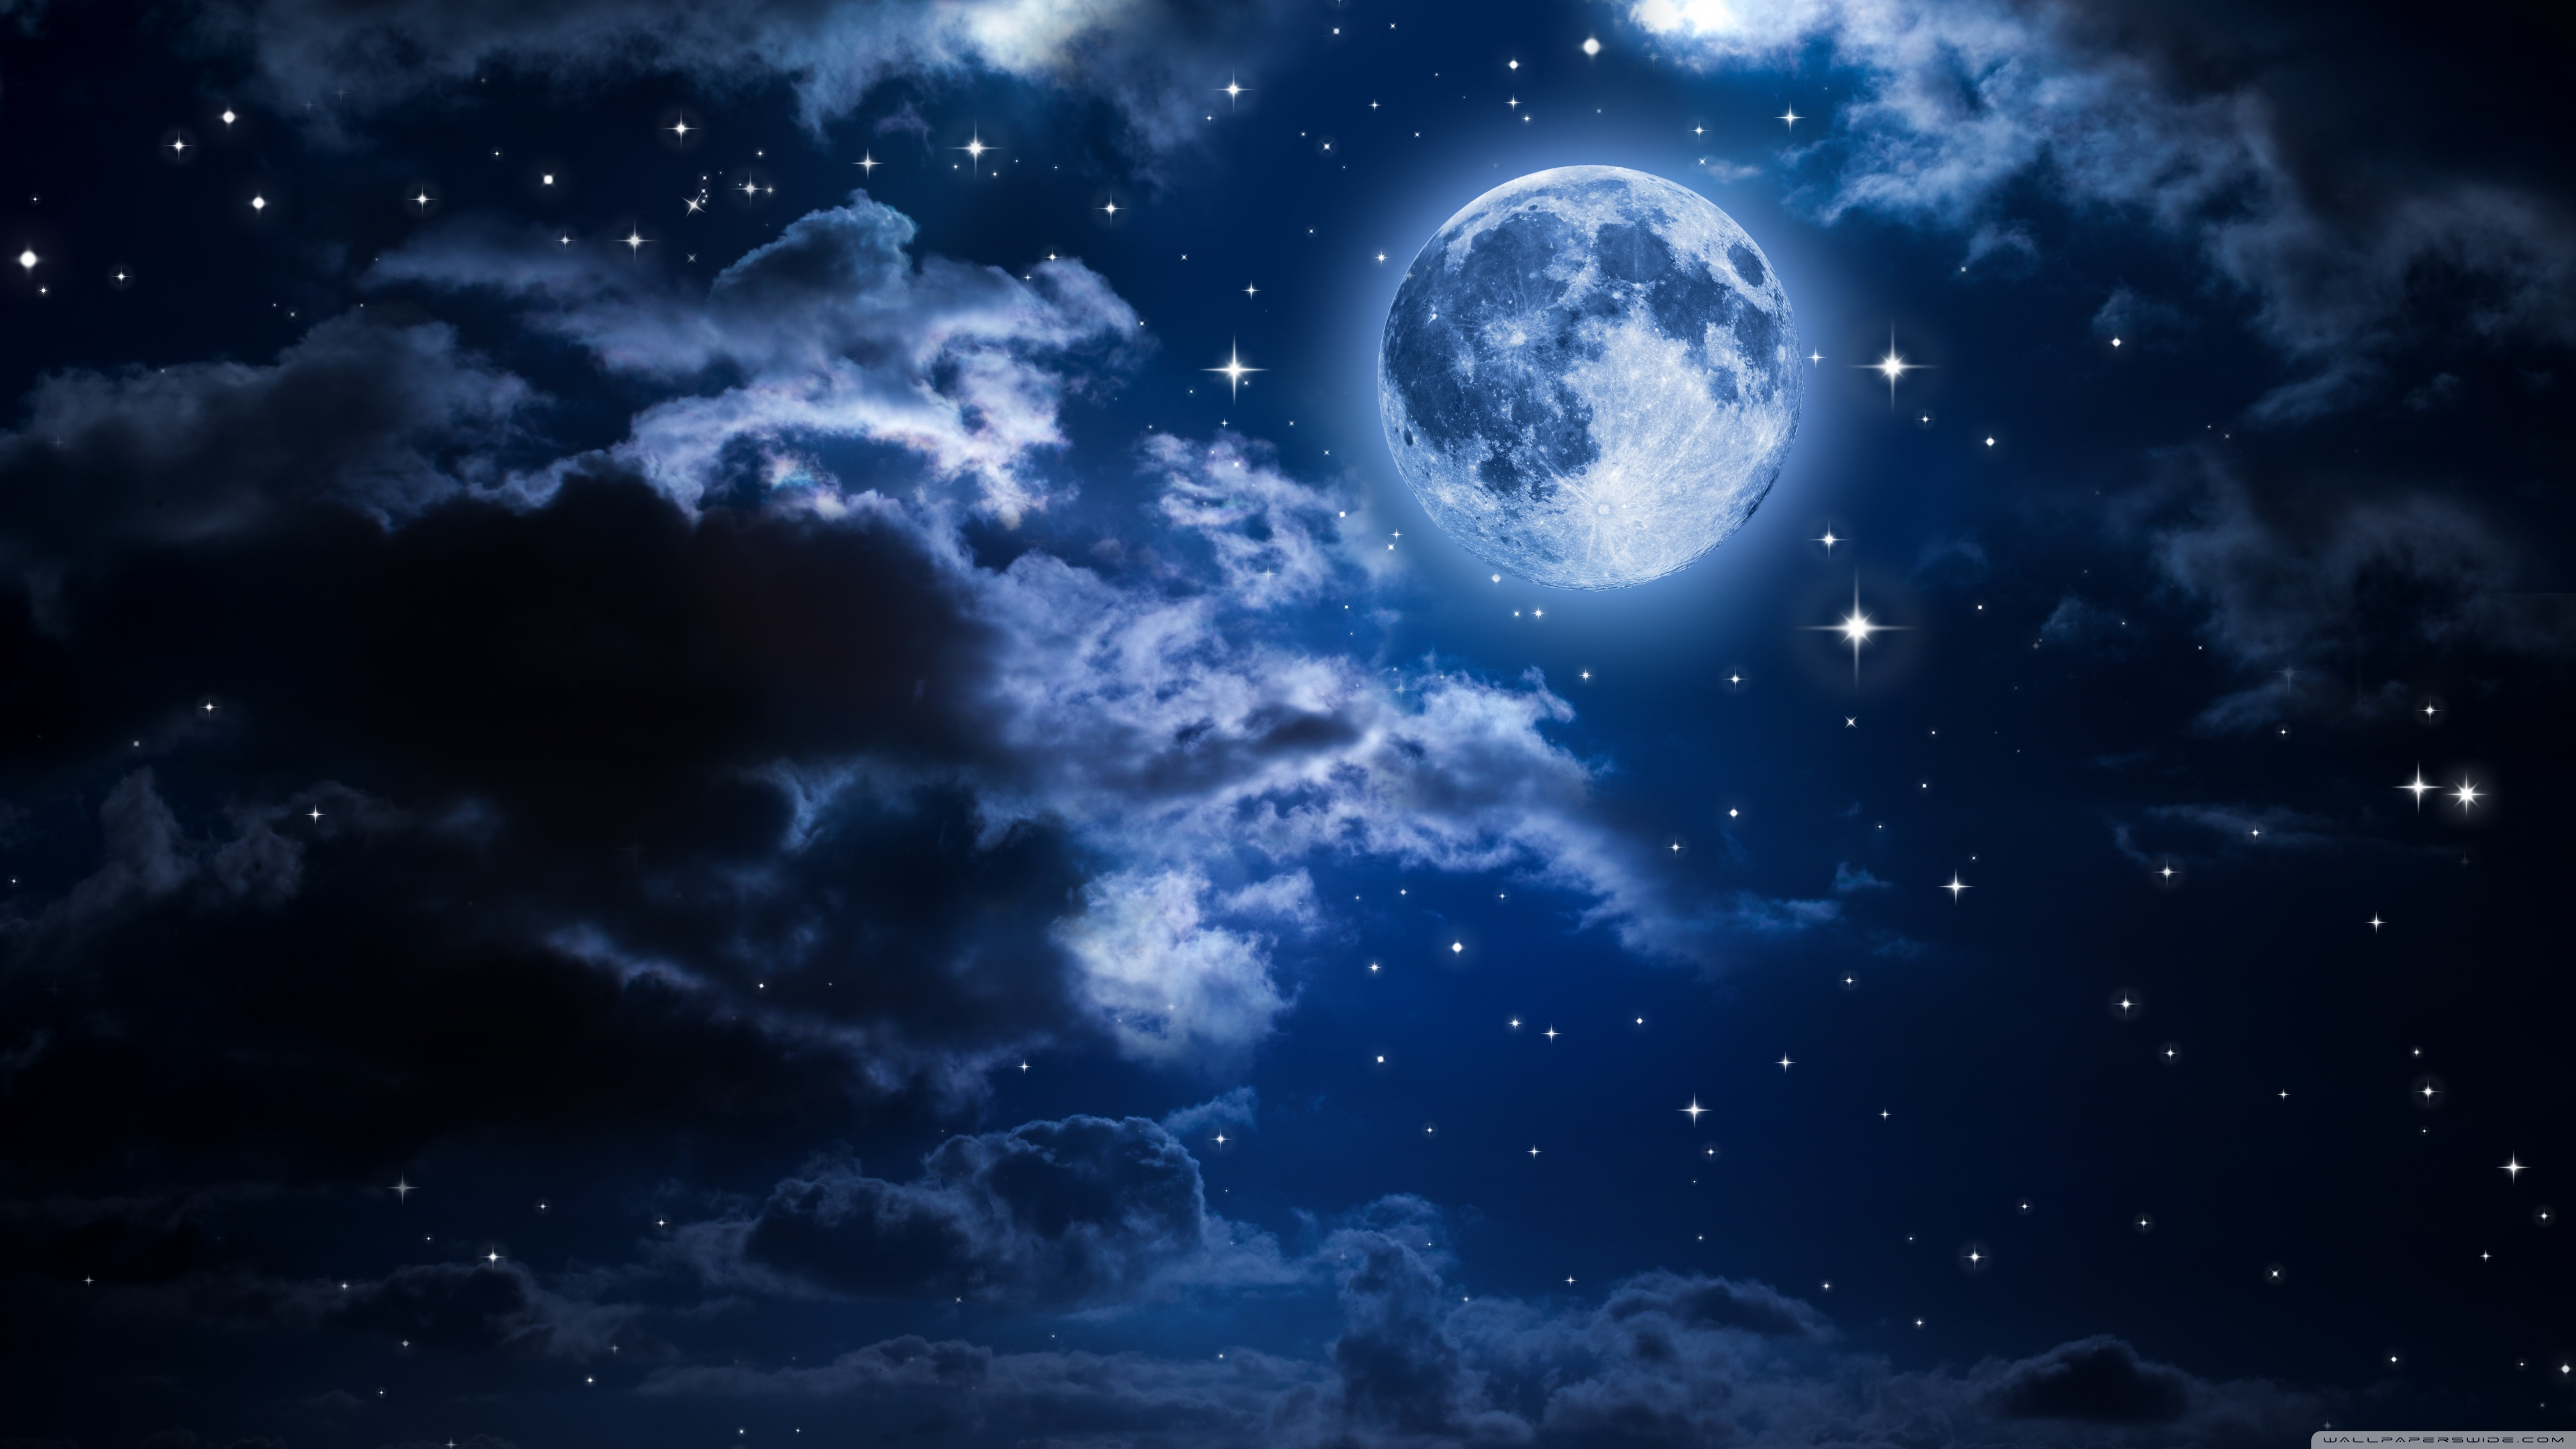 Uhd 16 - - Night Sky Stars Moon , HD Wallpaper & Backgrounds